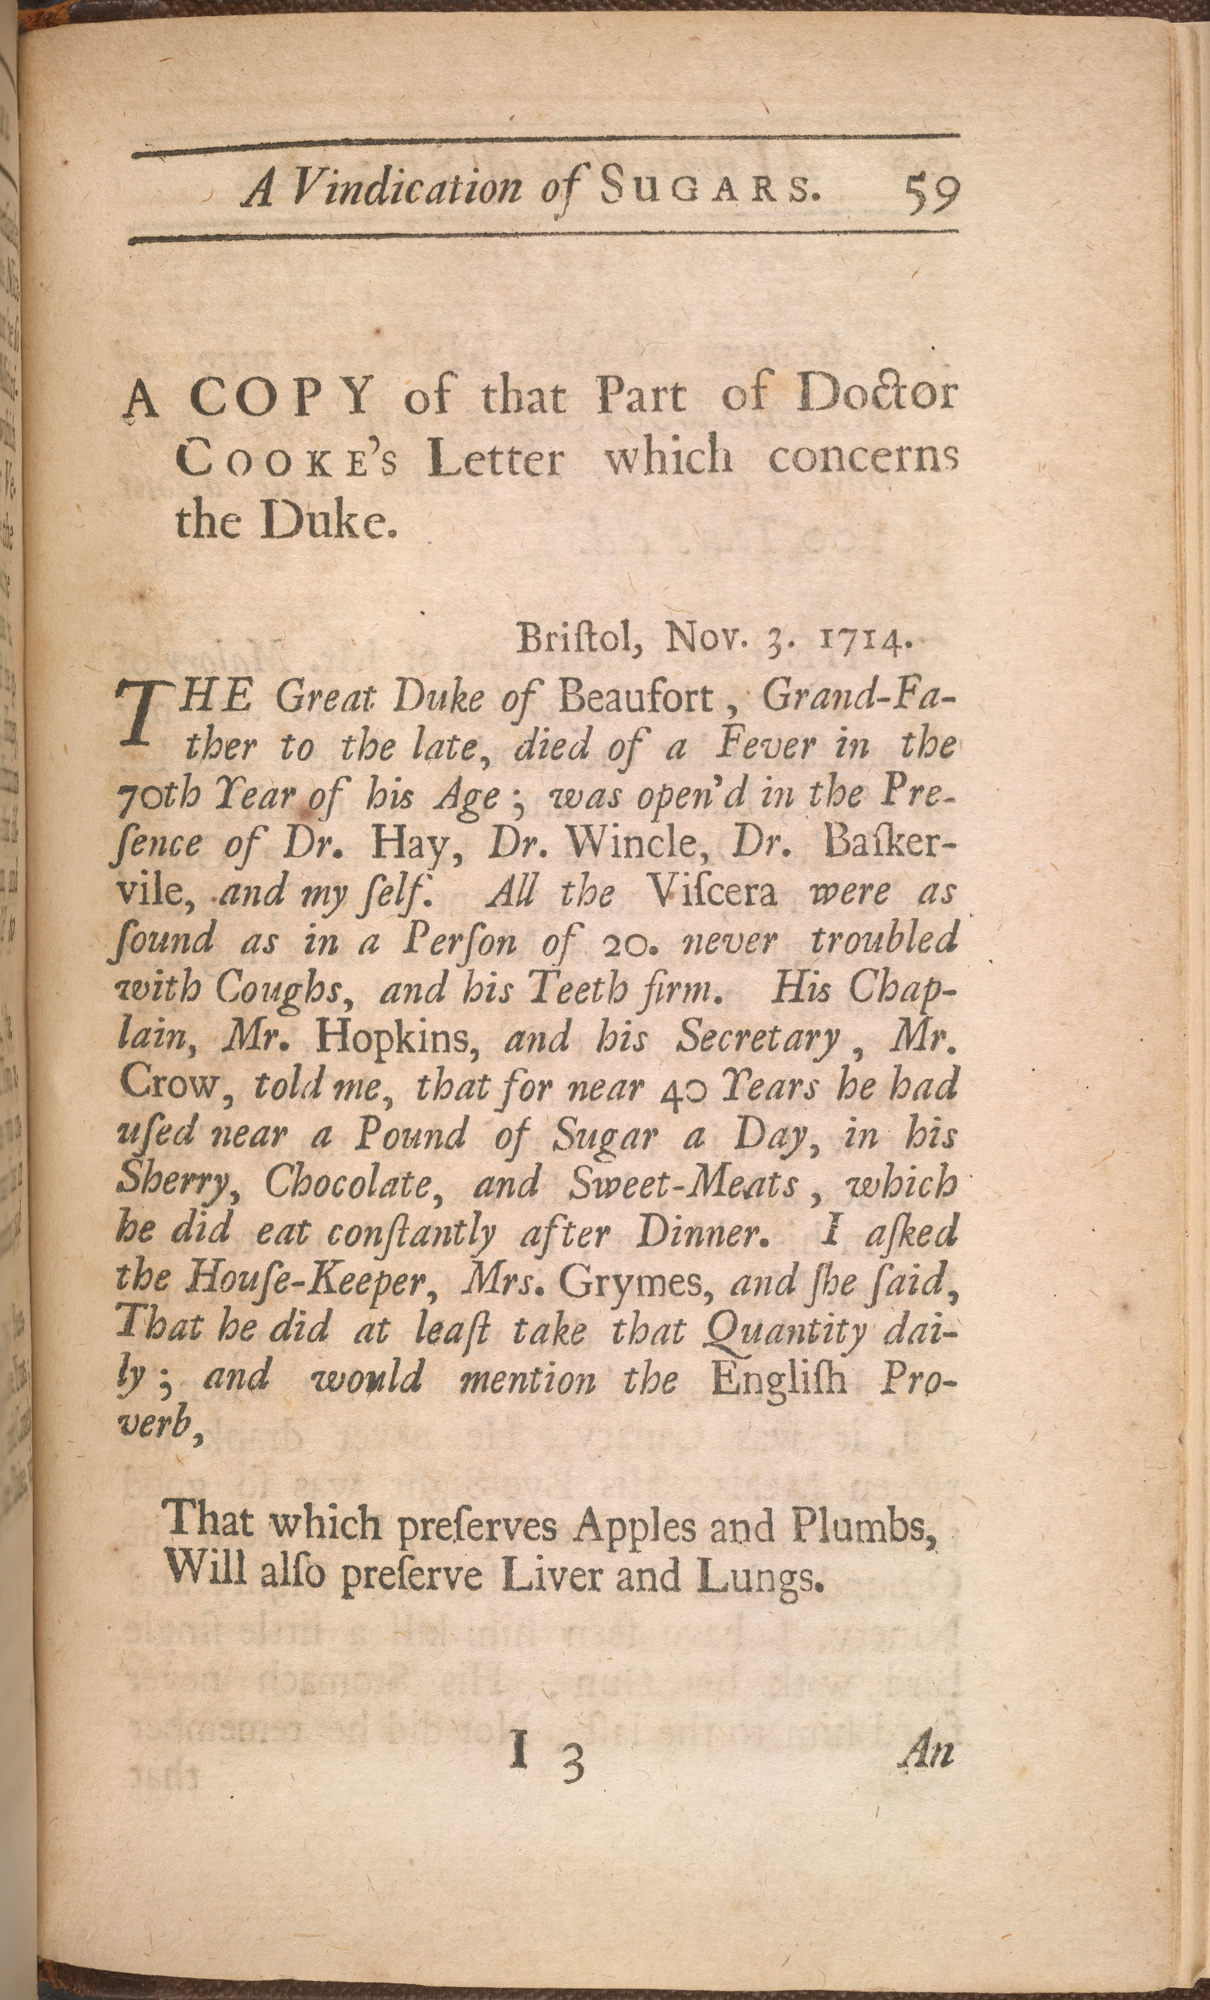 Page 59 from A Vindication of Sugars by Frederic Slare. The page features a transcript of a letter to 'The Great Duke of Beaufort' from Doctor Cooke. The contents is an statement of how sugar helped to combat coughs and loose teeth.